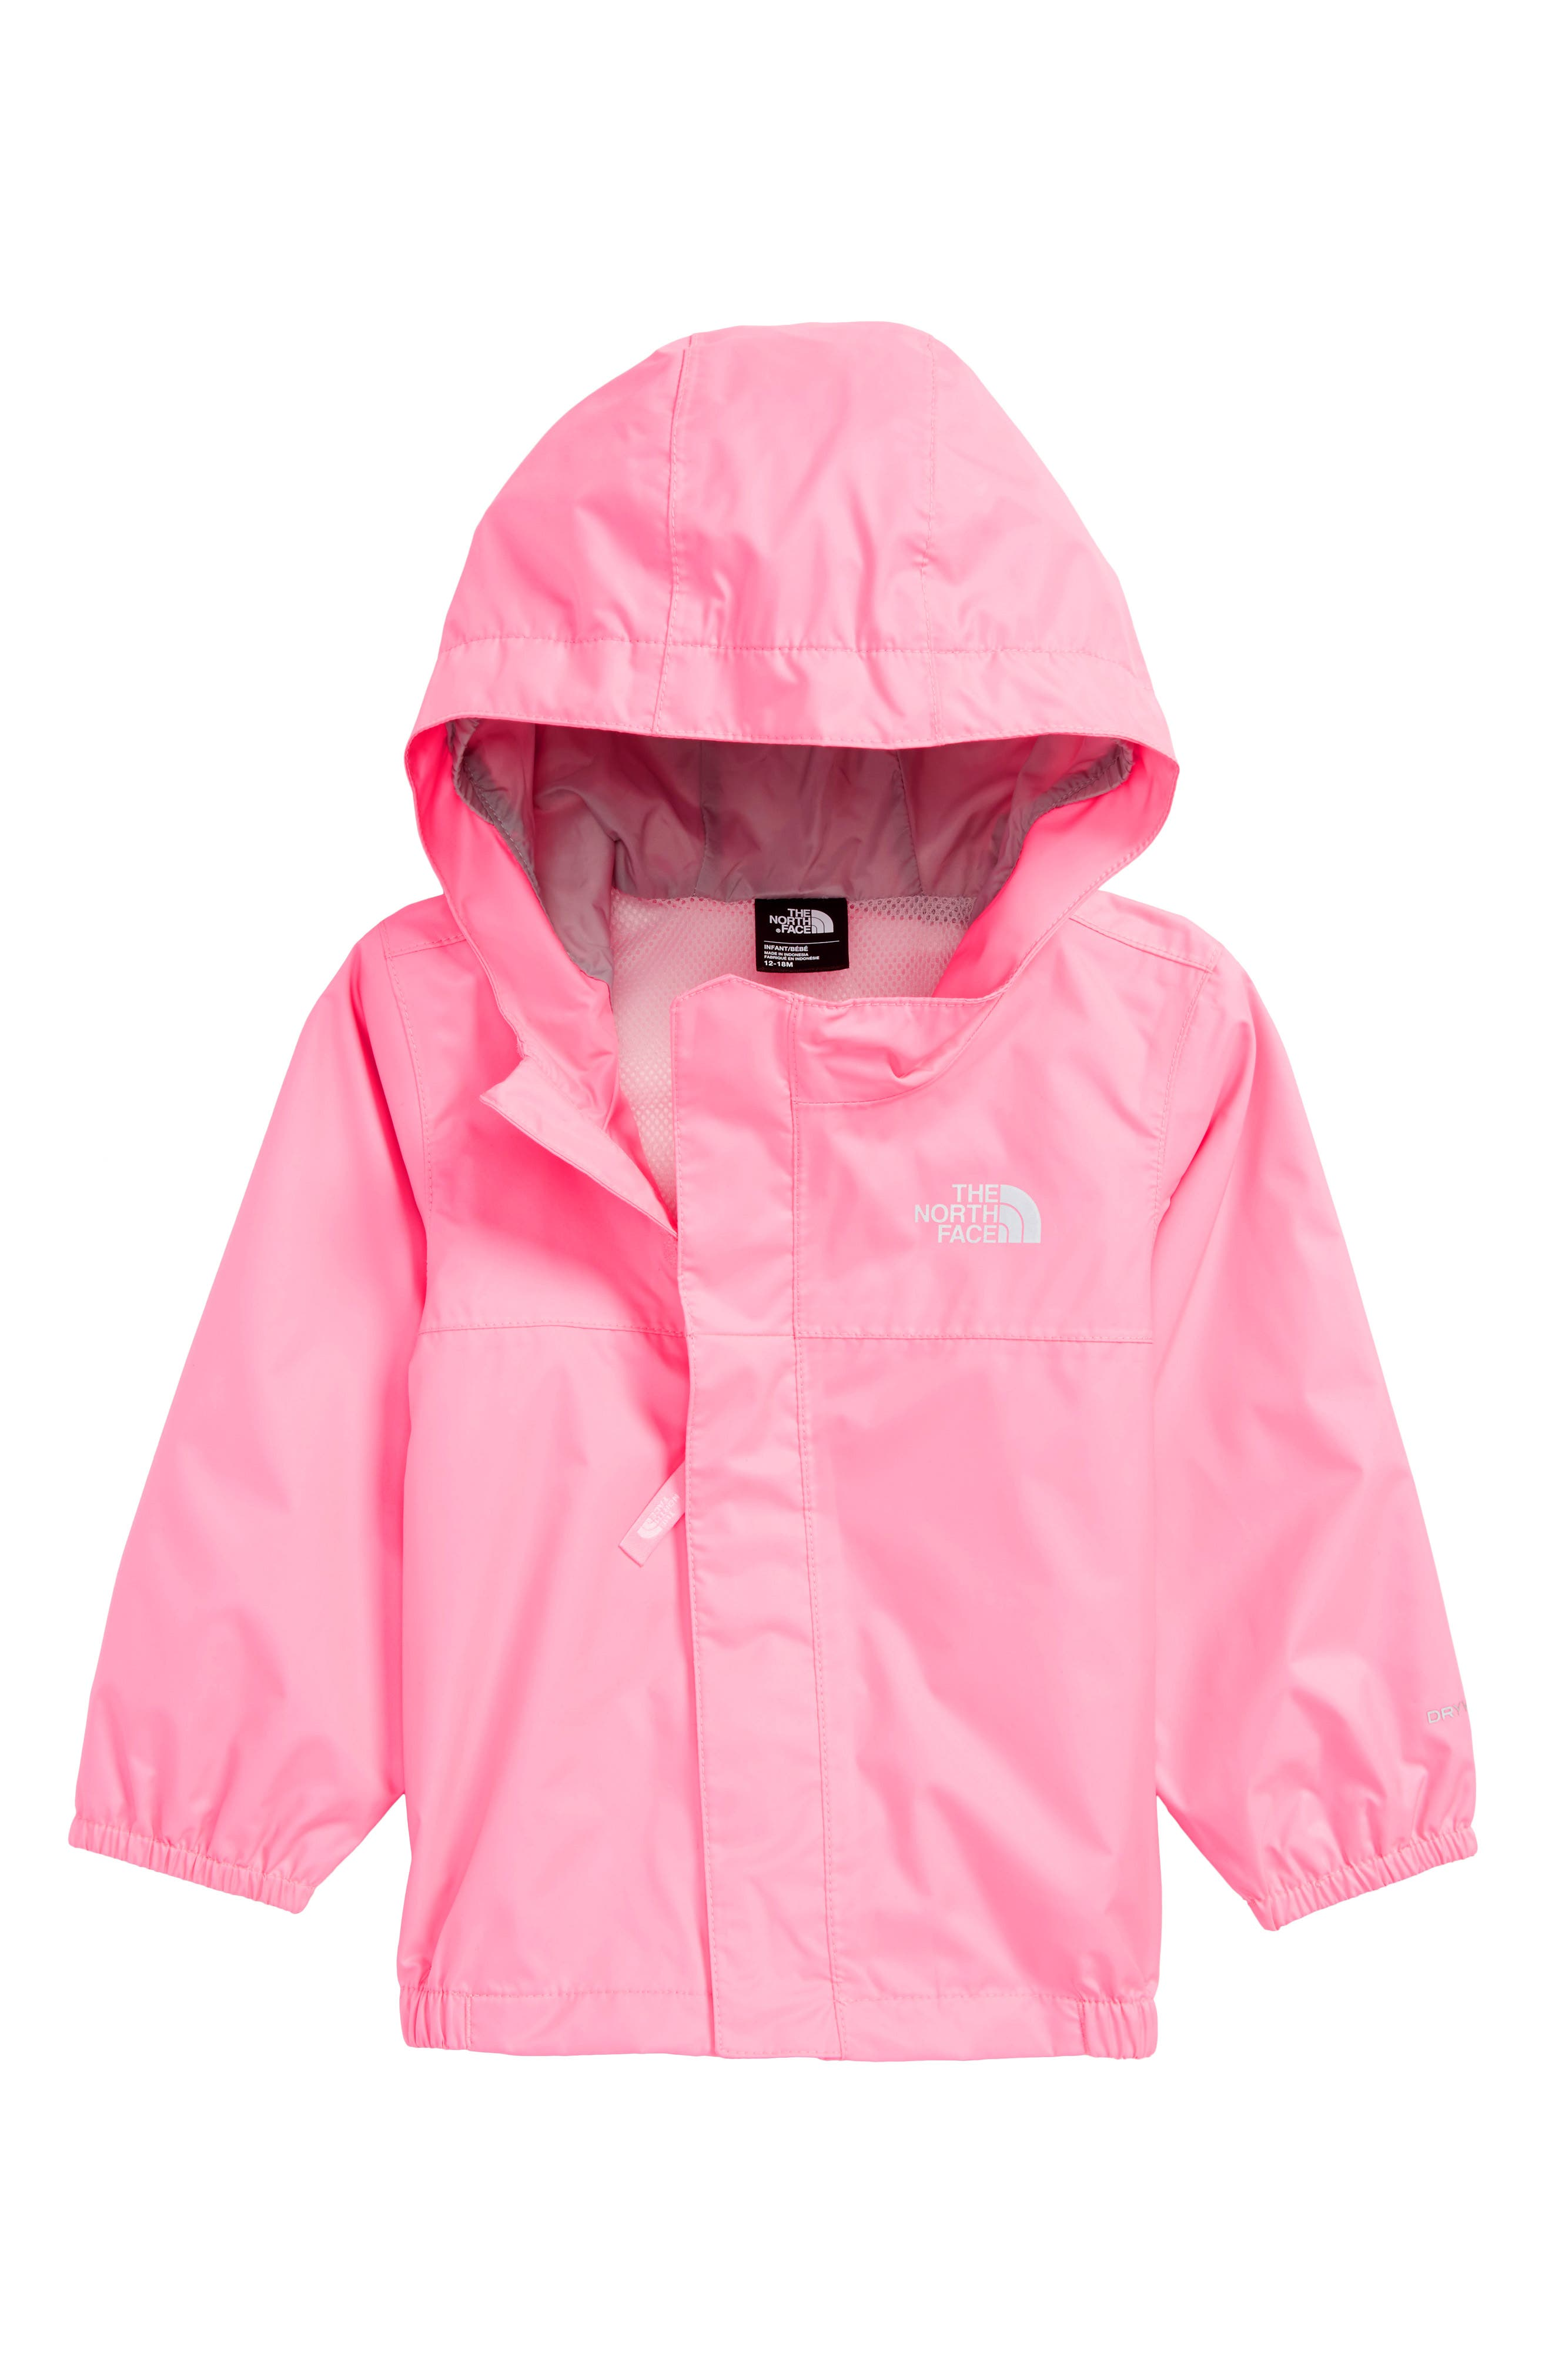 Tailout Hooded Rain Jacket,                         Main,                         color, 660